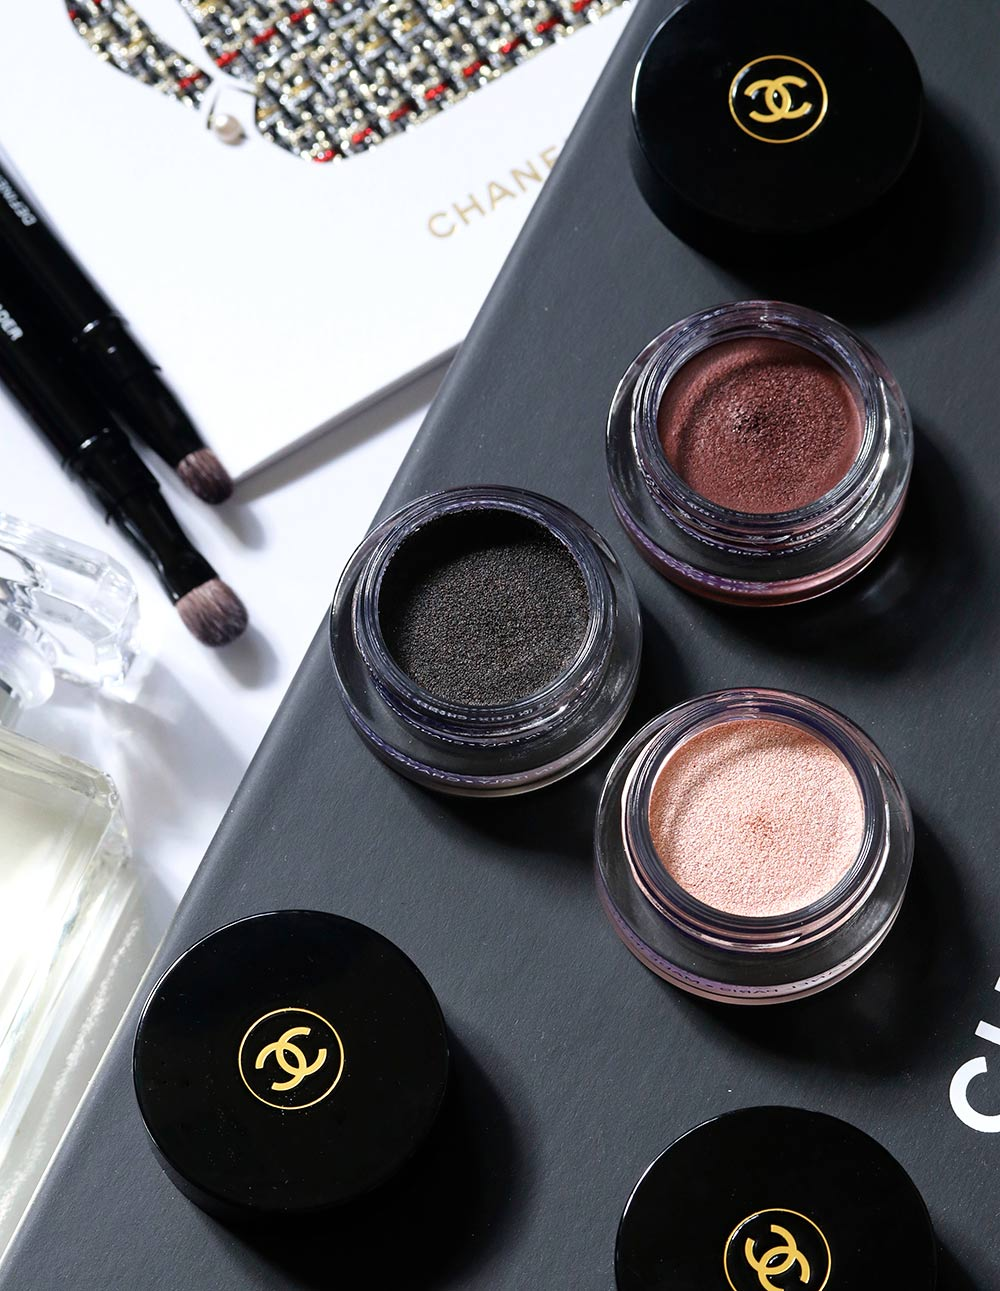 A Look at a Few Pieces From the Chanel Ombre Premiere Eyes Collection - Makeup and Beauty Blog